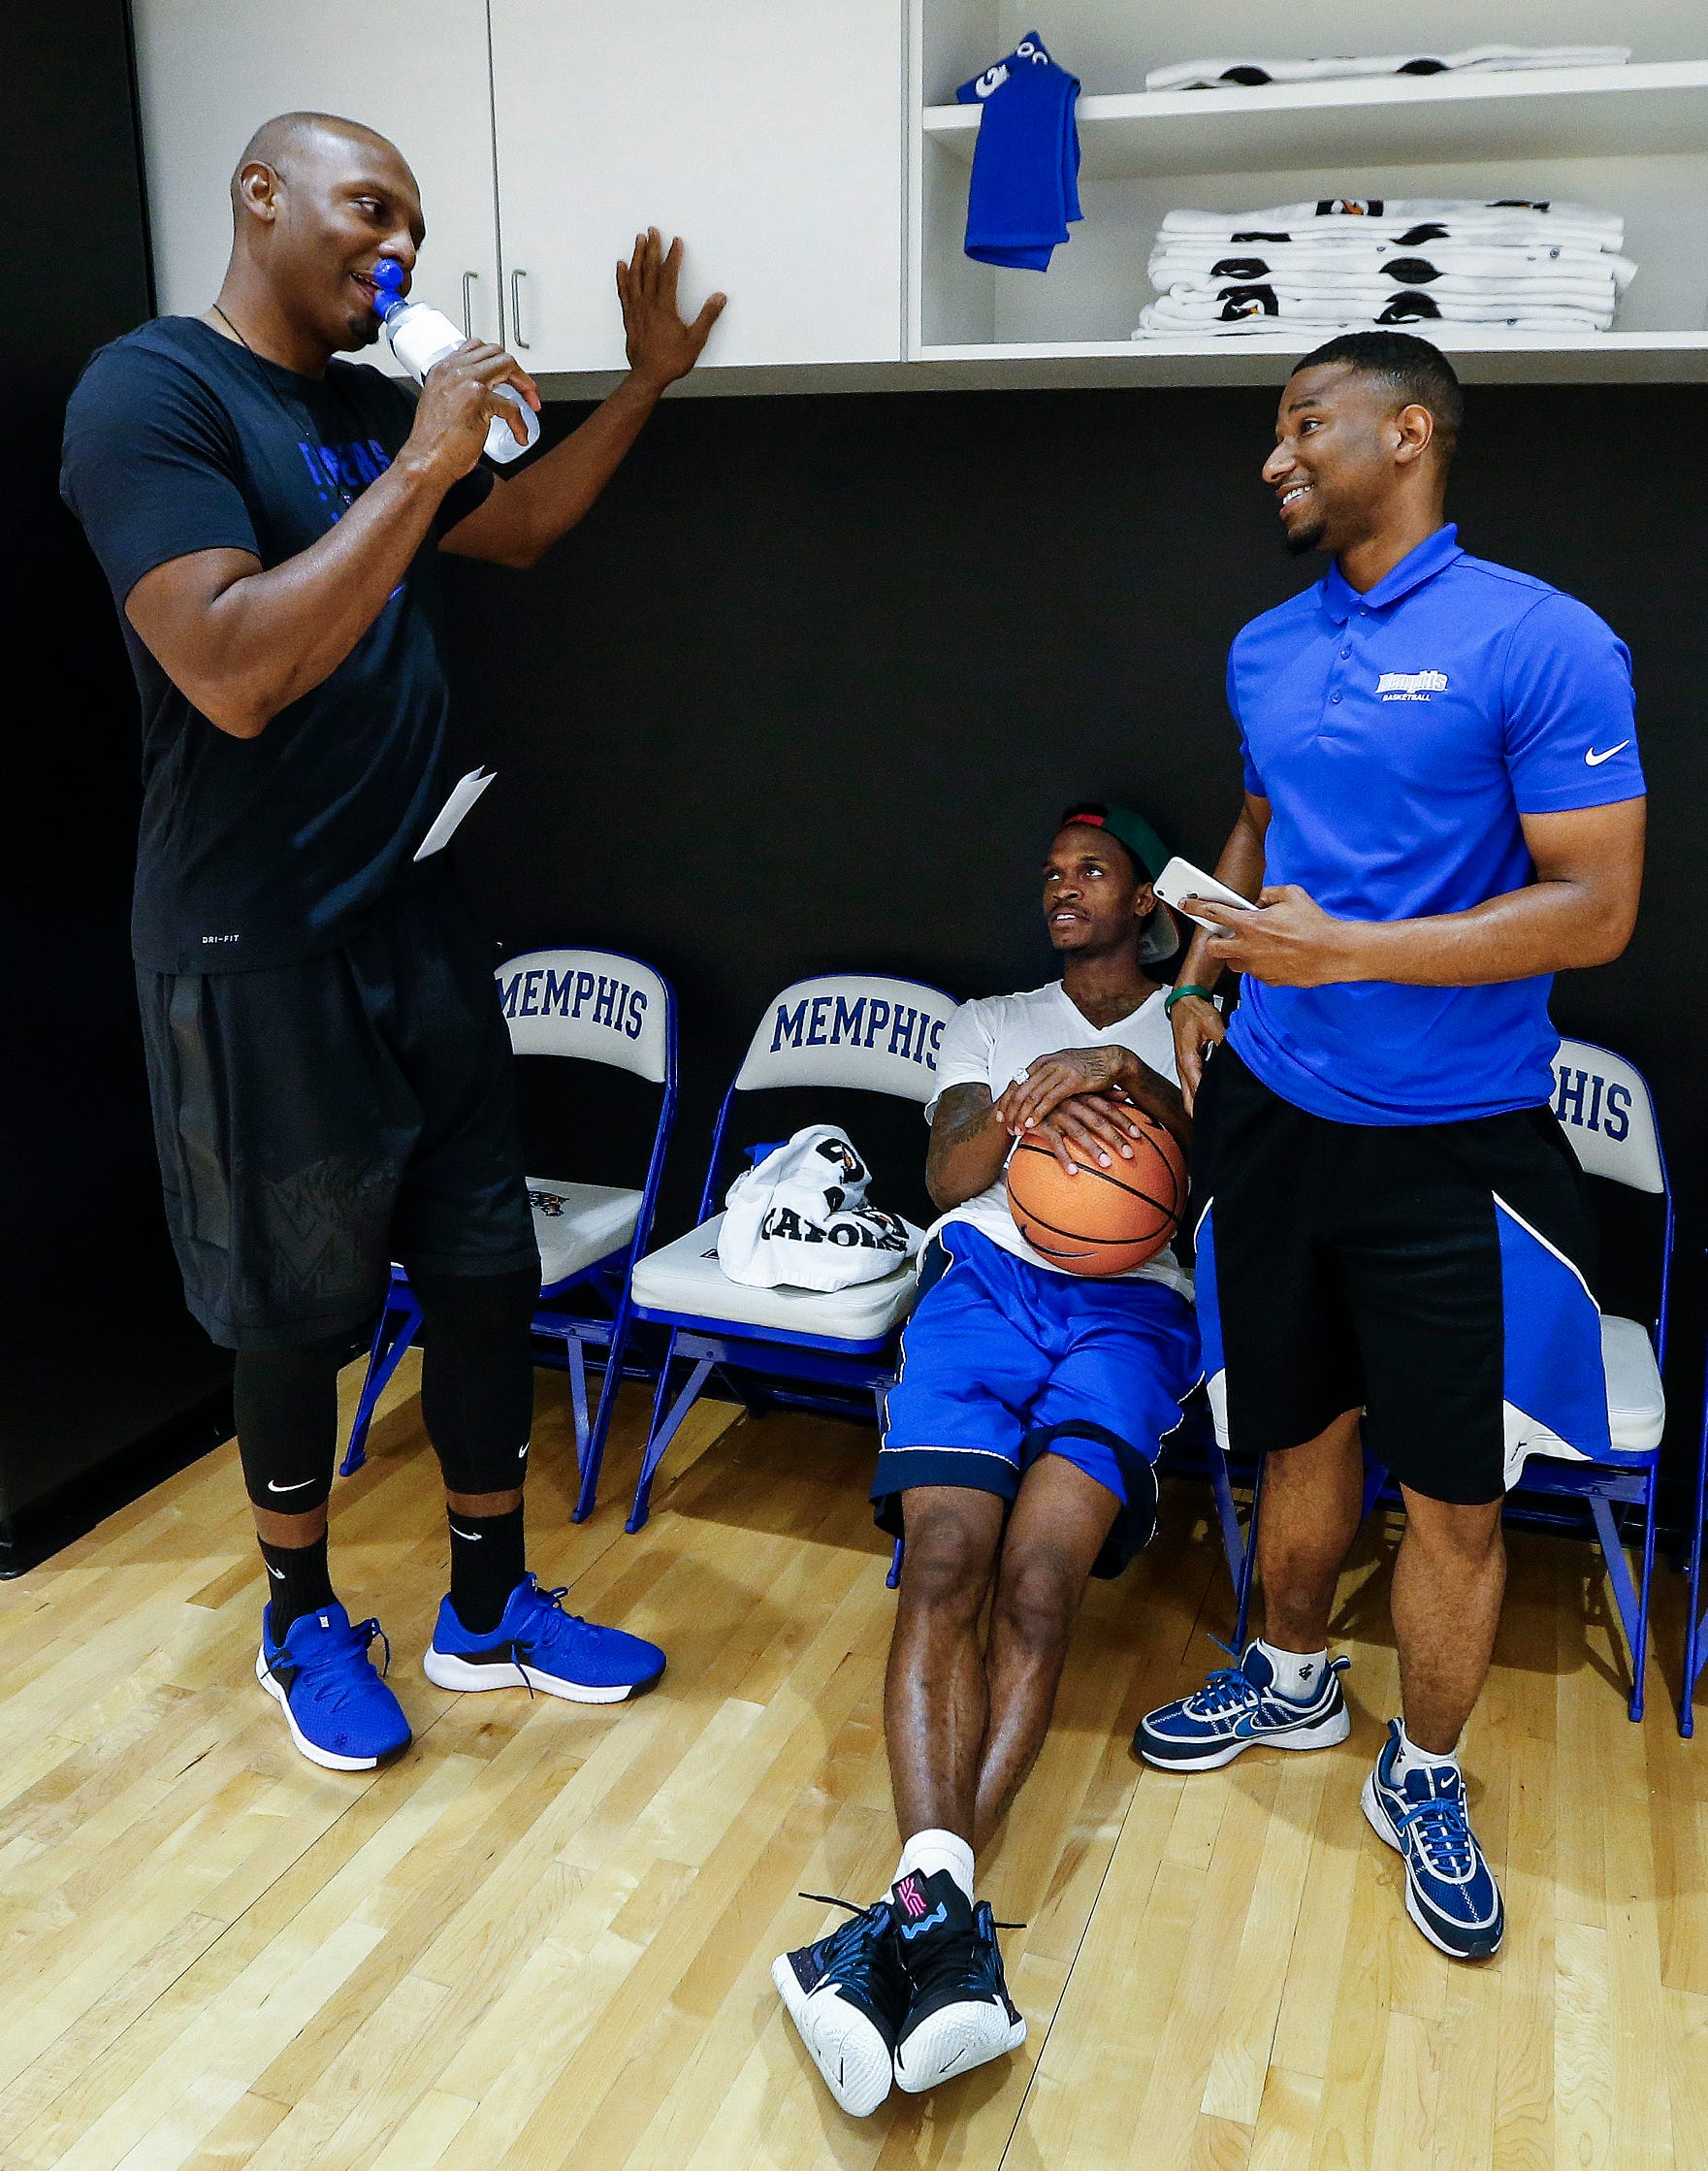 Memphis head basketball coach Penny Hardaway (left) chats with former Tiger players Joe Jackson (middle) and Trey Draper (second right) during an open practice Tuesday afternoon at the Laurie-Walton Family Basketball Center.